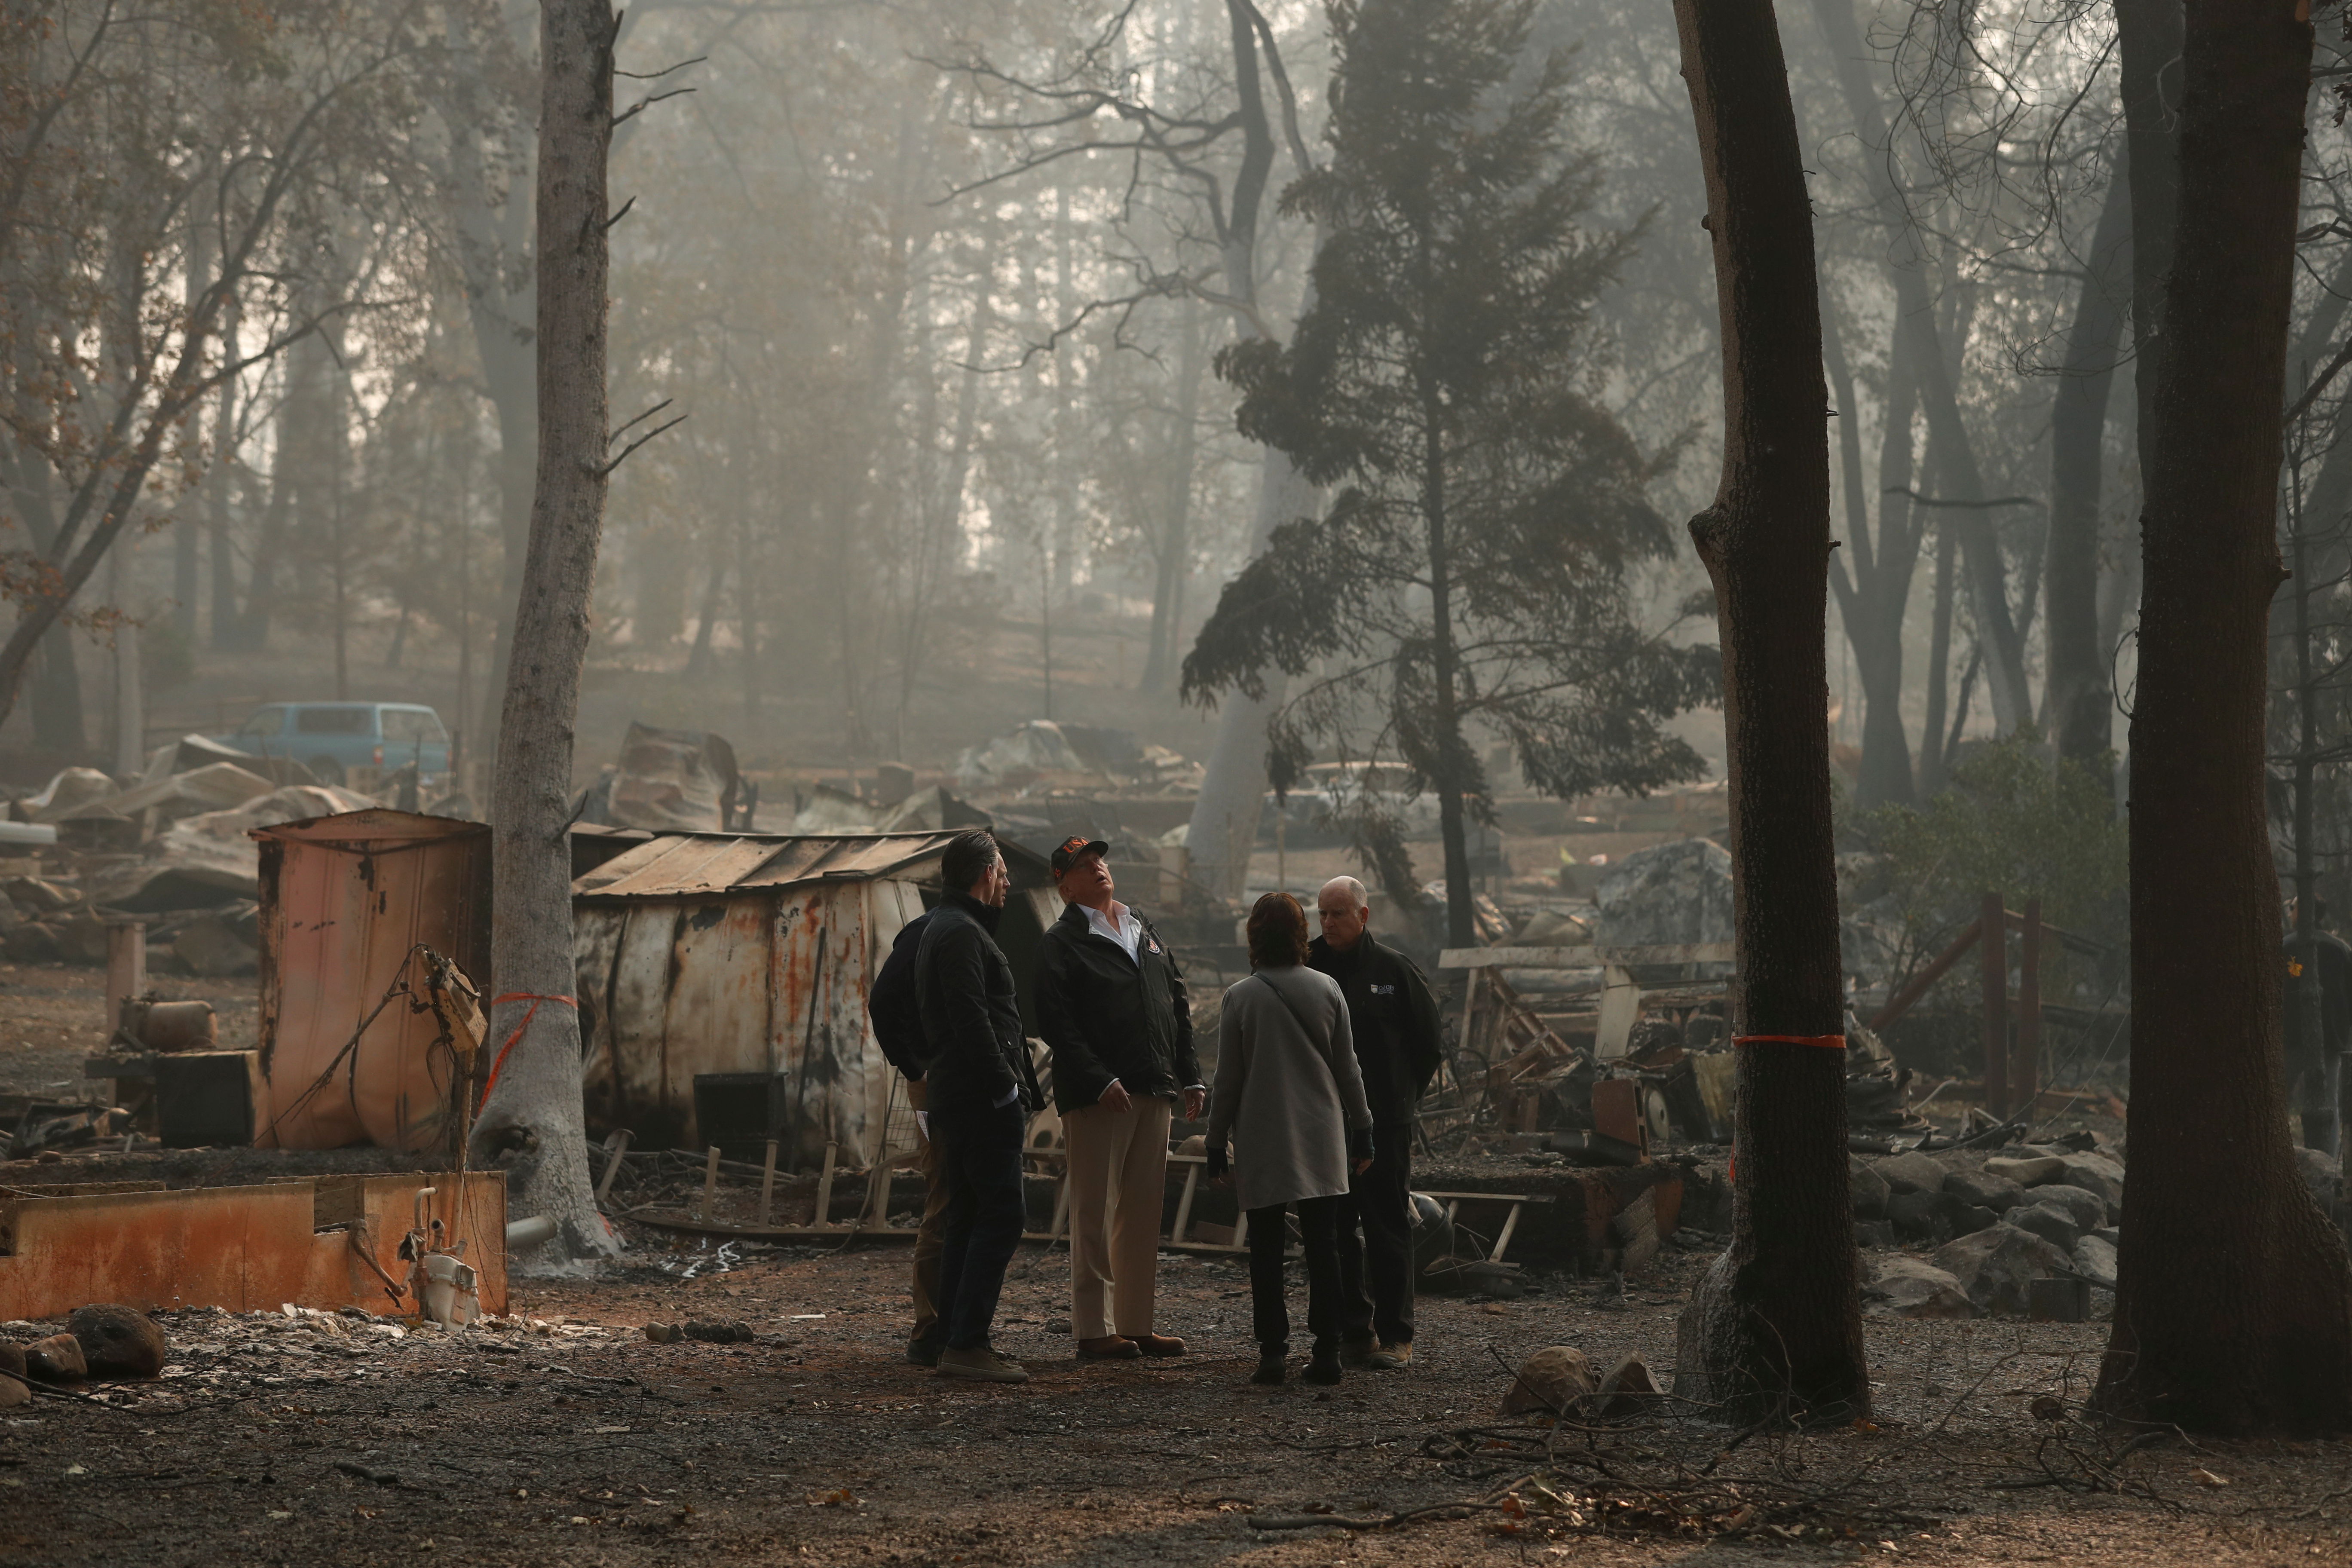 U.S. President Donald Trump visits the charred wreckage of Skyway Villa Mobile Home and RV Park with Governor-elect Gavin Newsom (L), FEMA head Brock Long (2nd L), Paradise Mayor Jody Jones (2n R) and Governor Jerry Brown in Paradise, California, U.S., November 17, 2018. REUTERS/Leah Millis